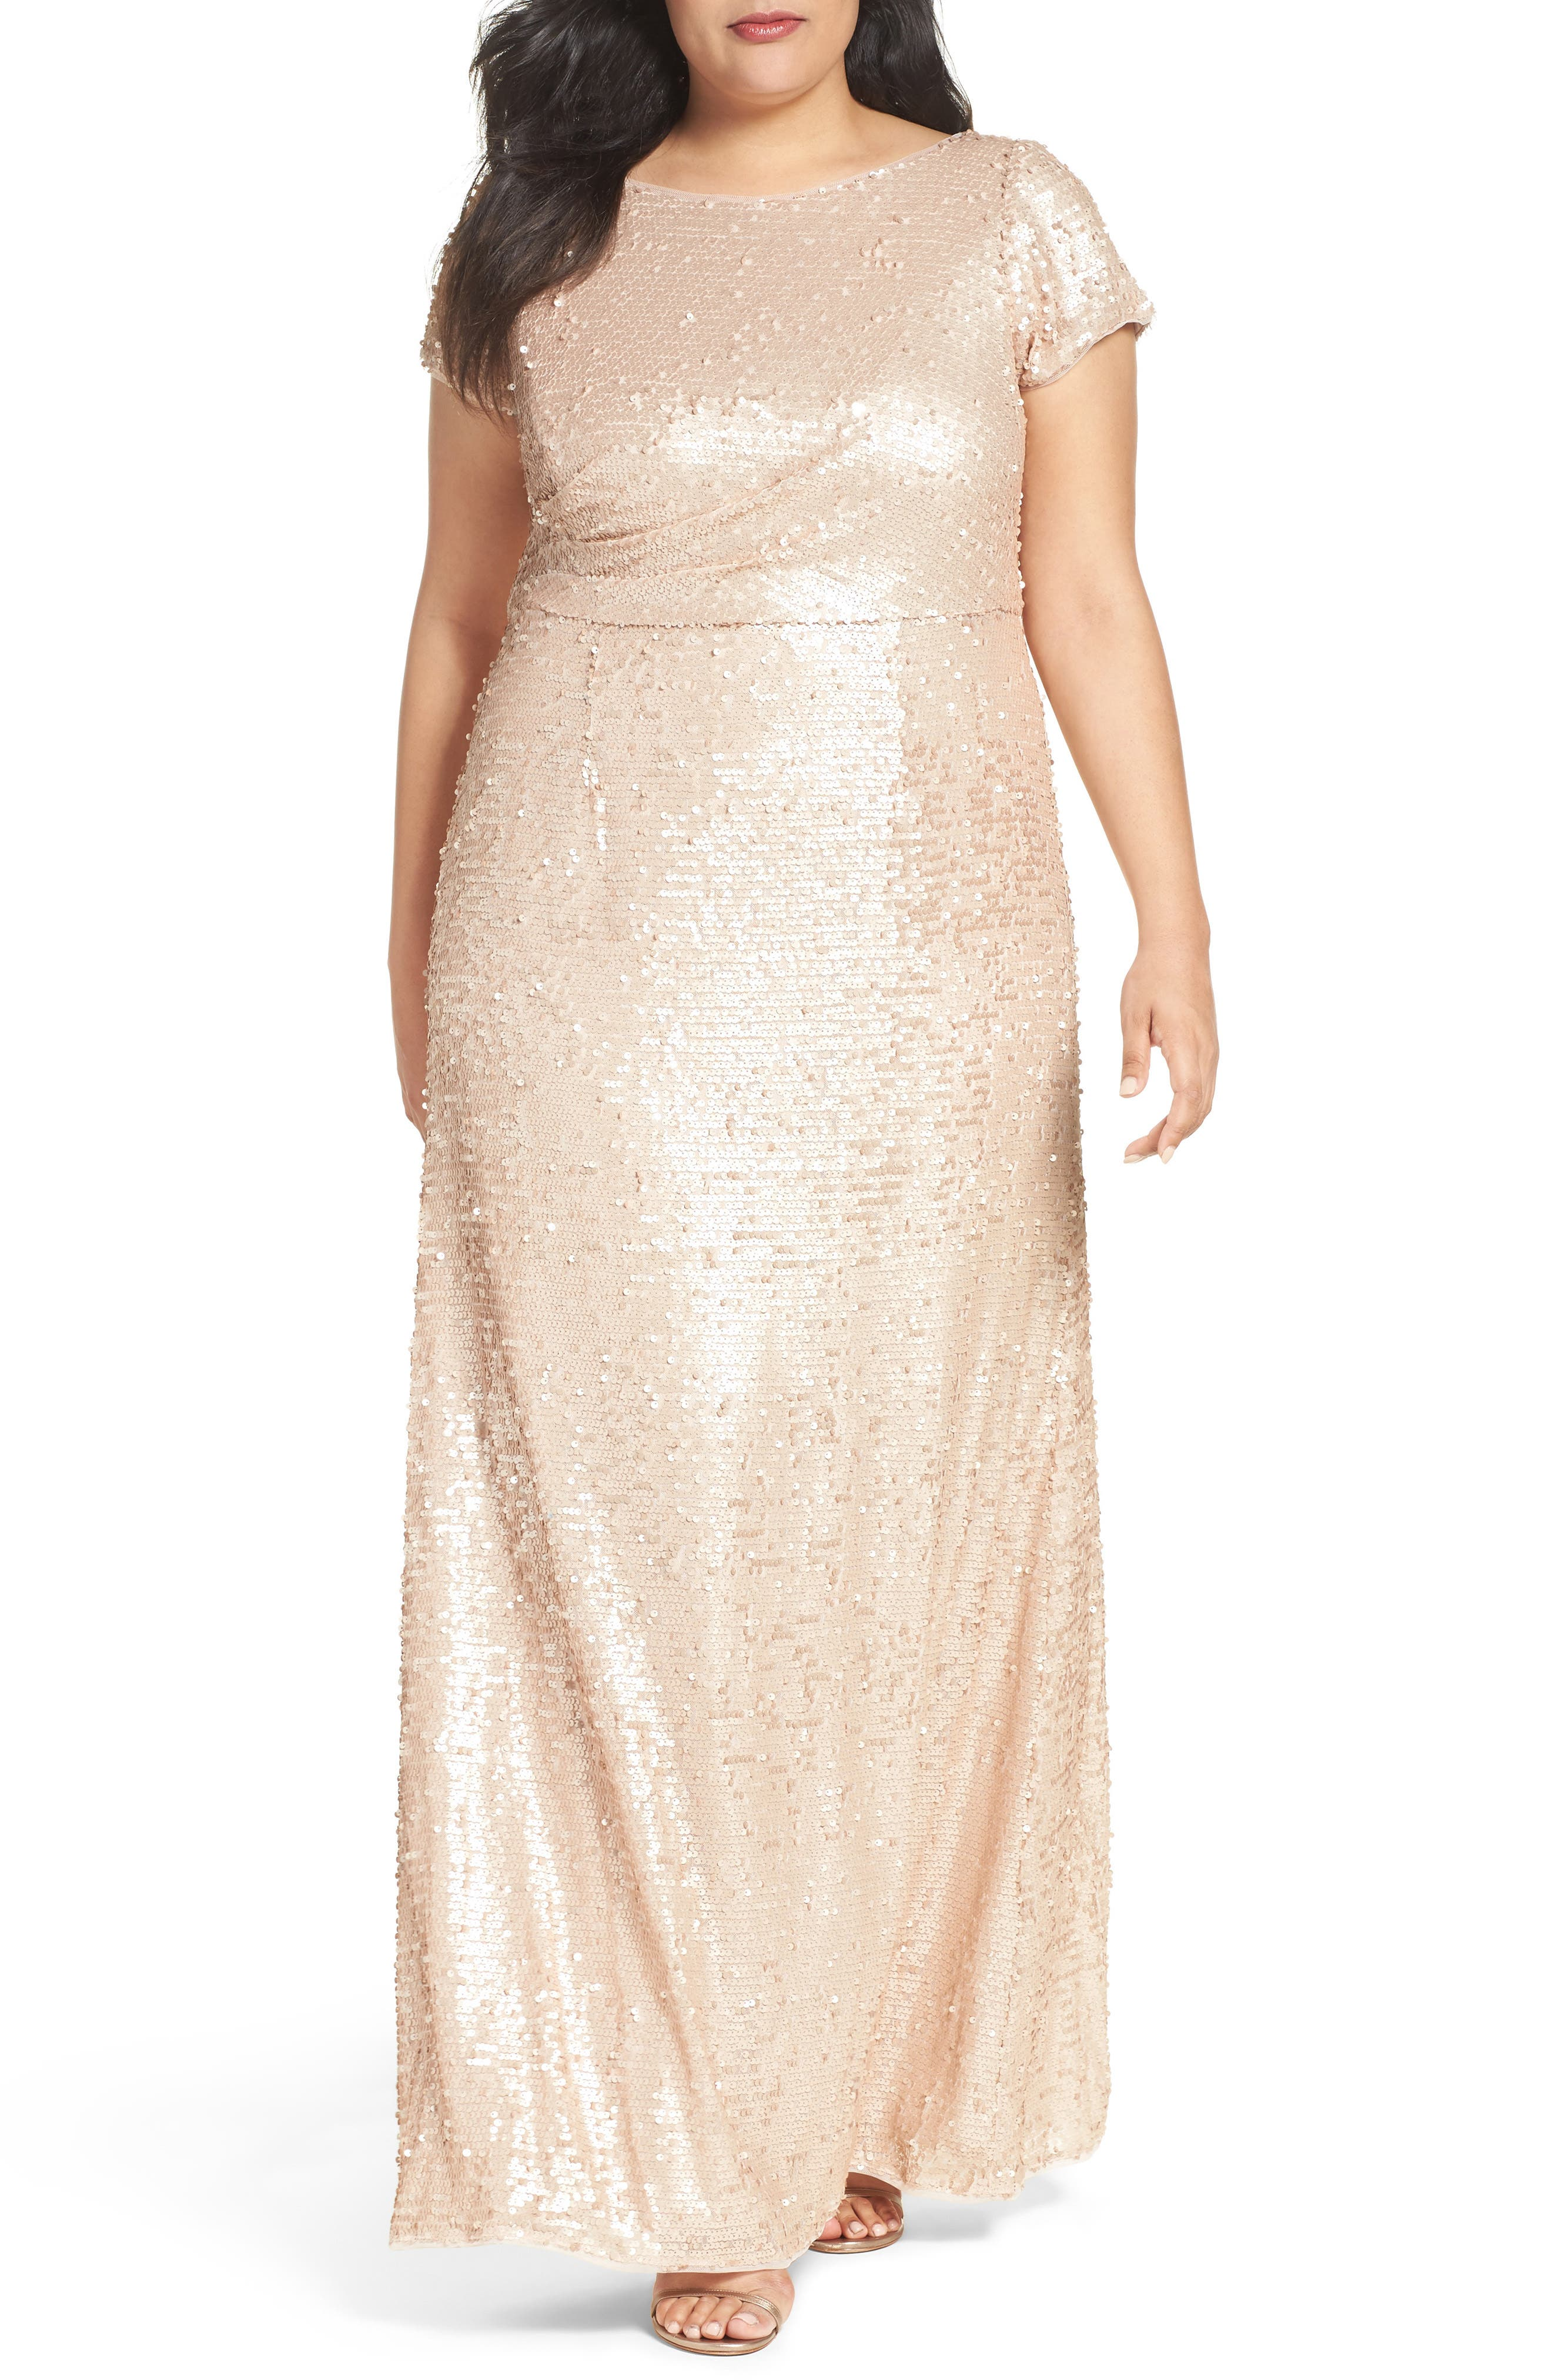 ADRIANNA PAPELL Short Sleeve Sequin Gown, Nude   ModeSens